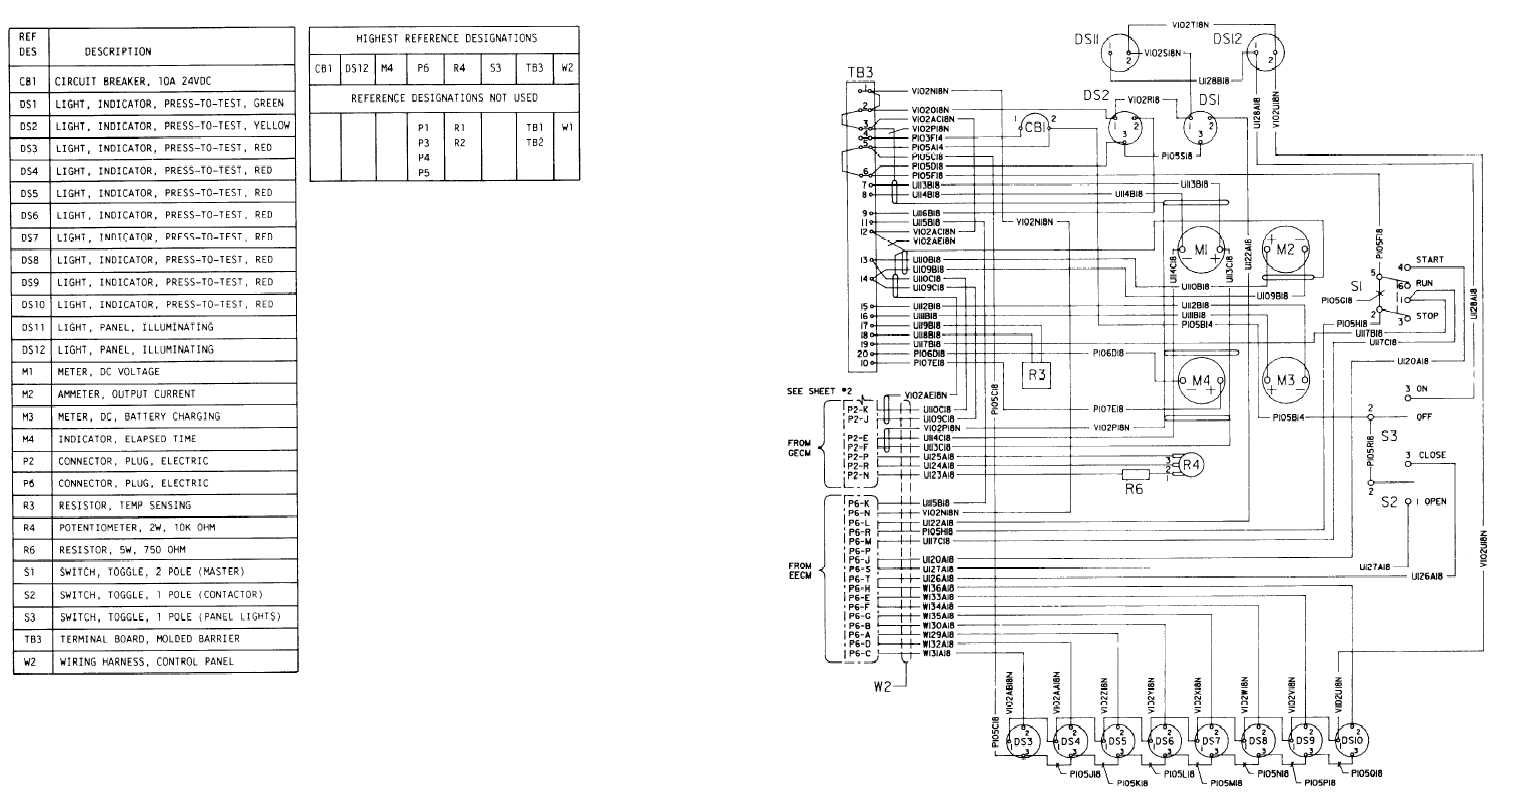 wiring diagram for pergola data wiring diagram schema 24 volt light wiring diagram wiring diagram for pergola [ 1528 x 808 Pixel ]